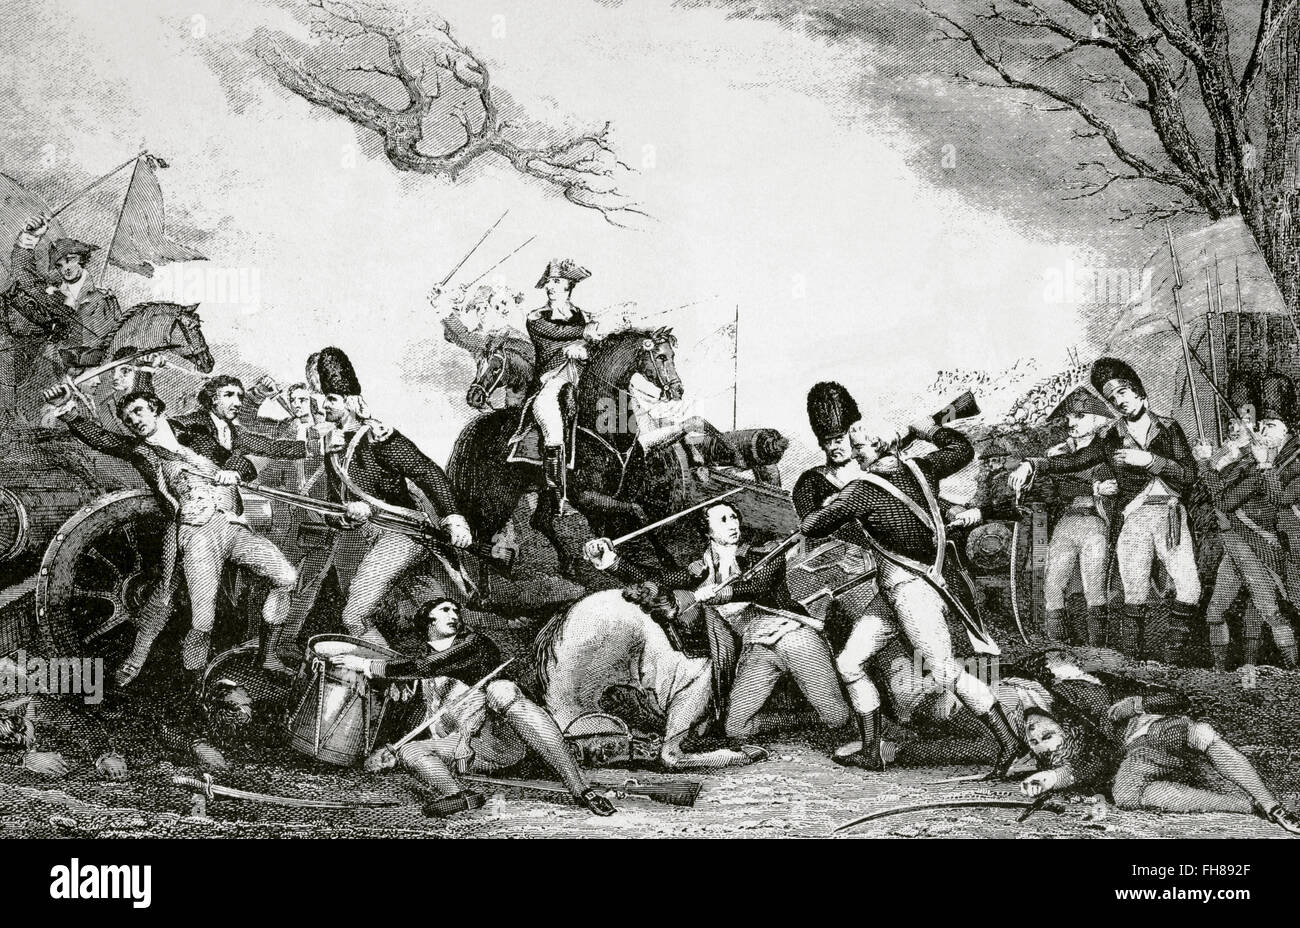 the history of terrorism from the american revolution to present day In the course of england's long and unsuccessful attempt to crush the american revolution, the myth arose that its government, under prime minister frederick, lord north, had acted in haste.